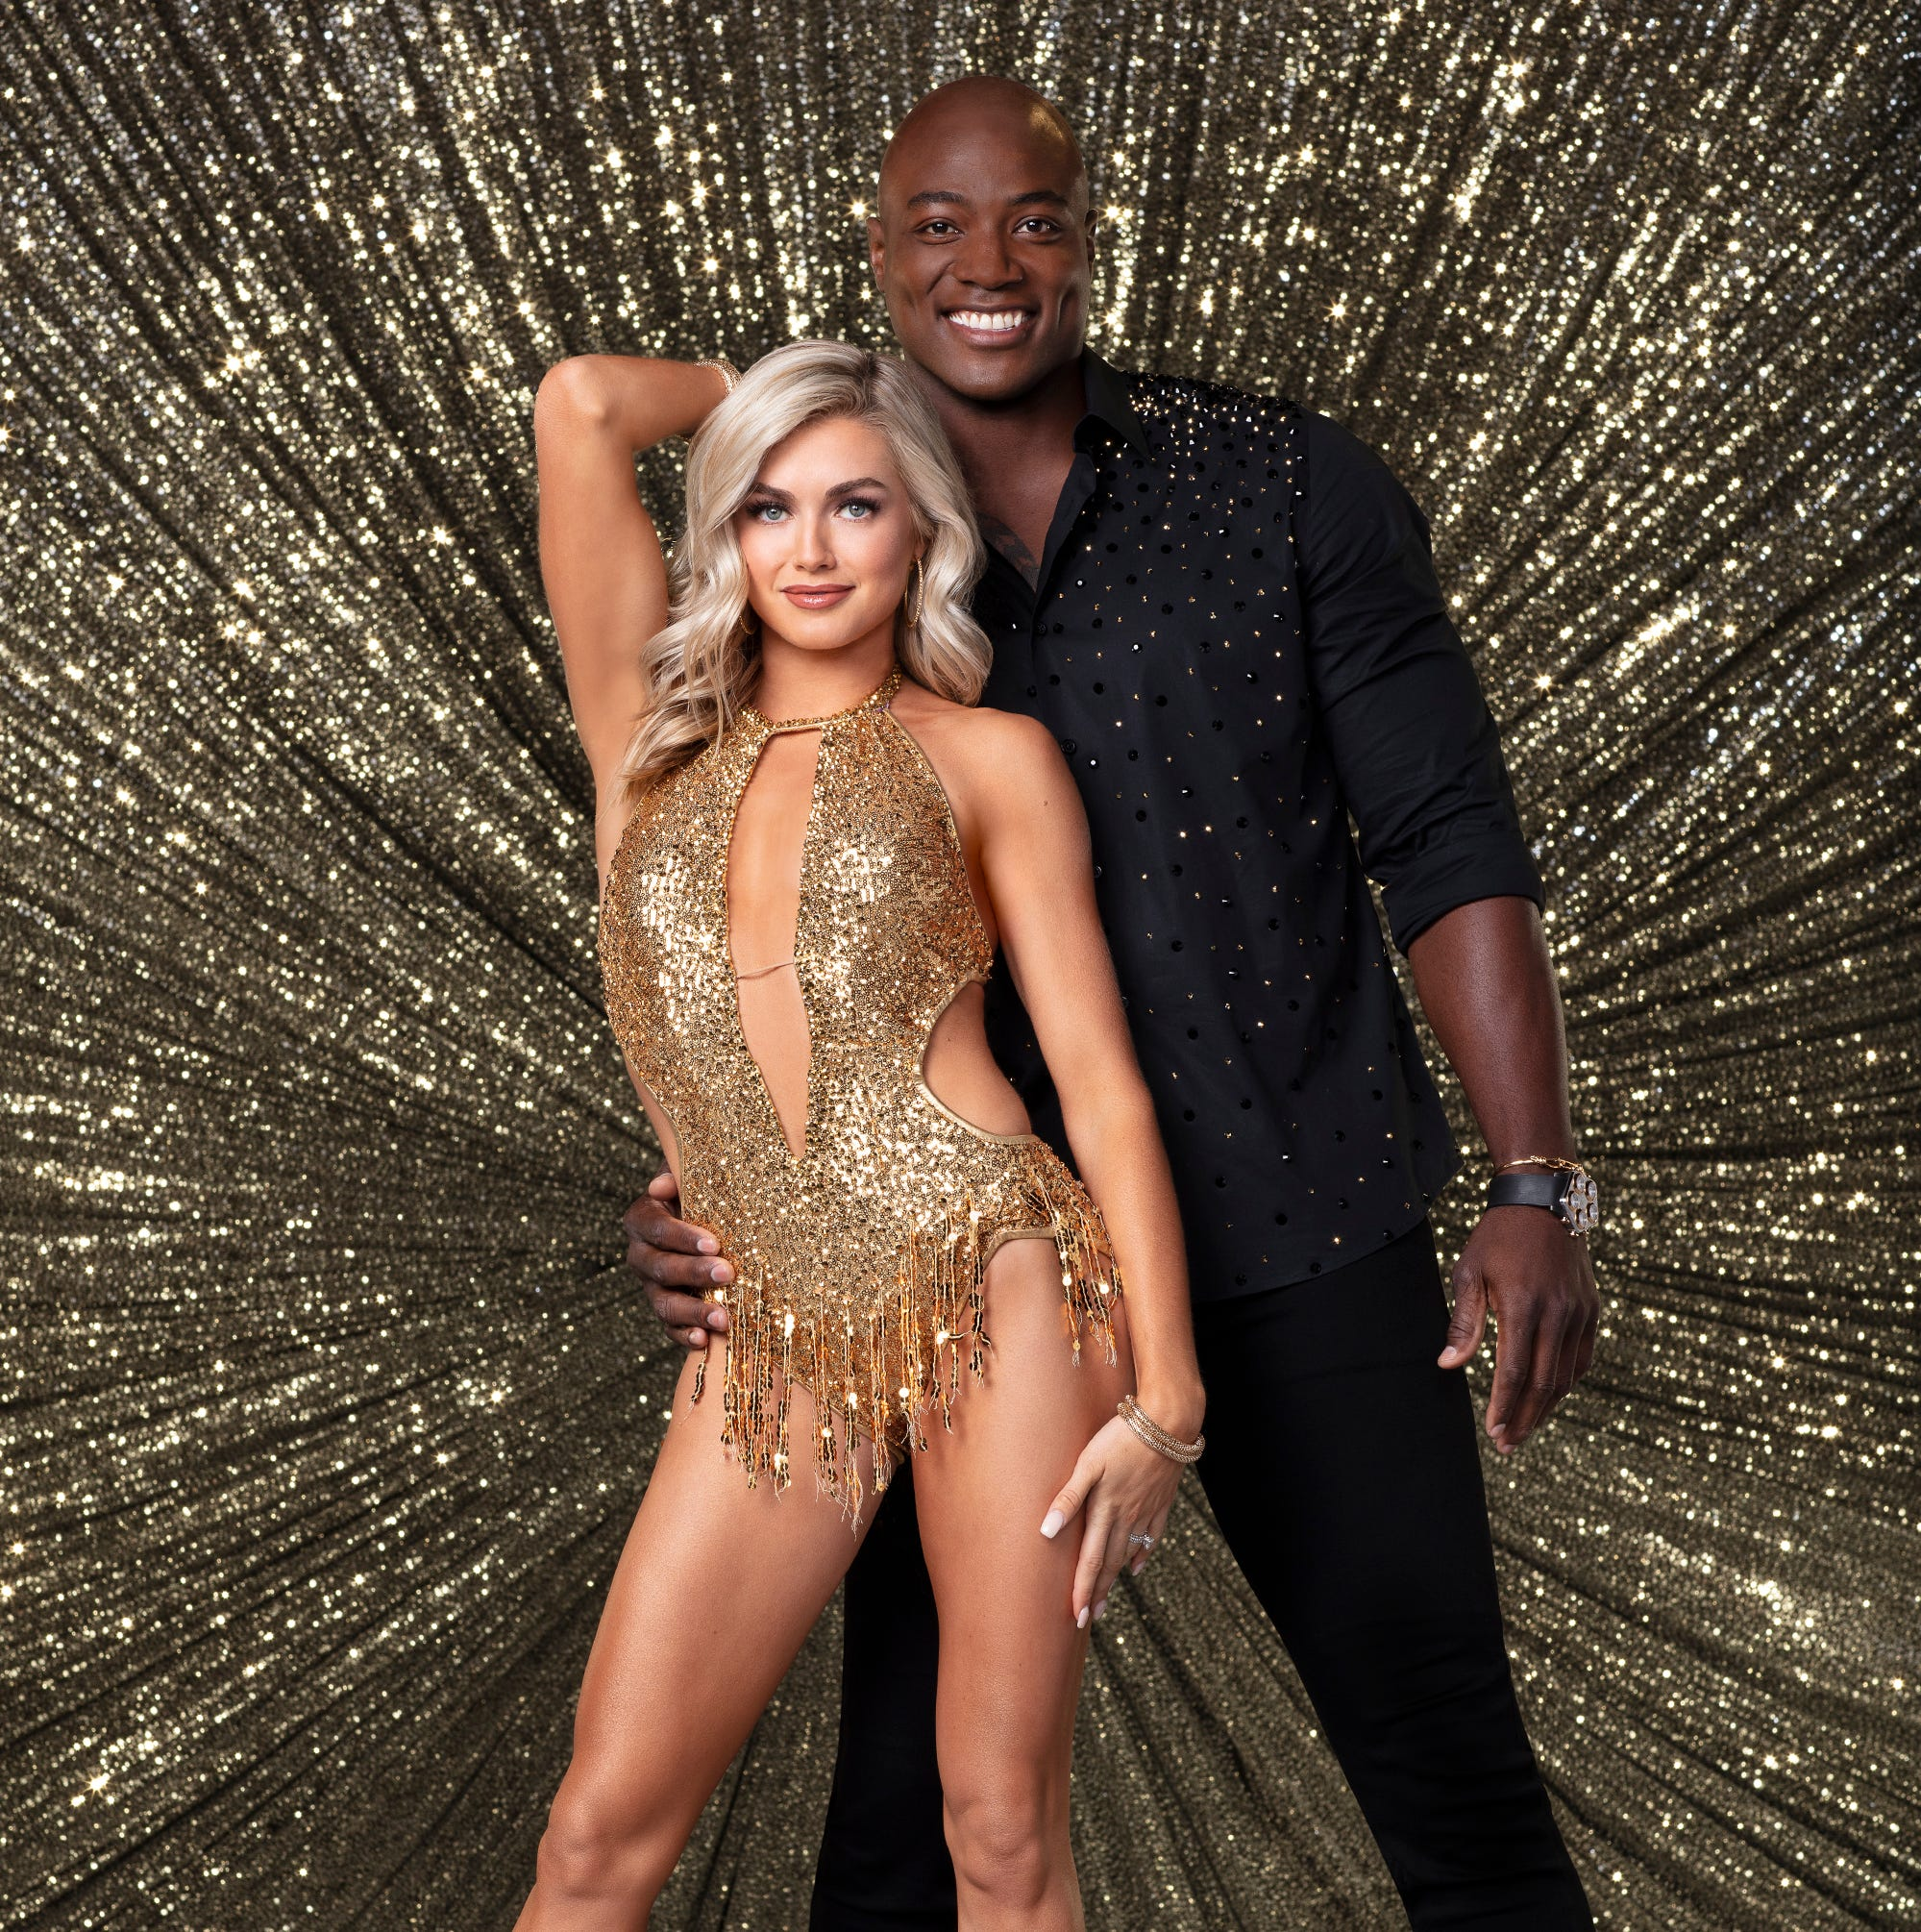 DeMarcus Ware and 17 Dancing with the Stars celebrities you (probably) didn't know had Alabama ties